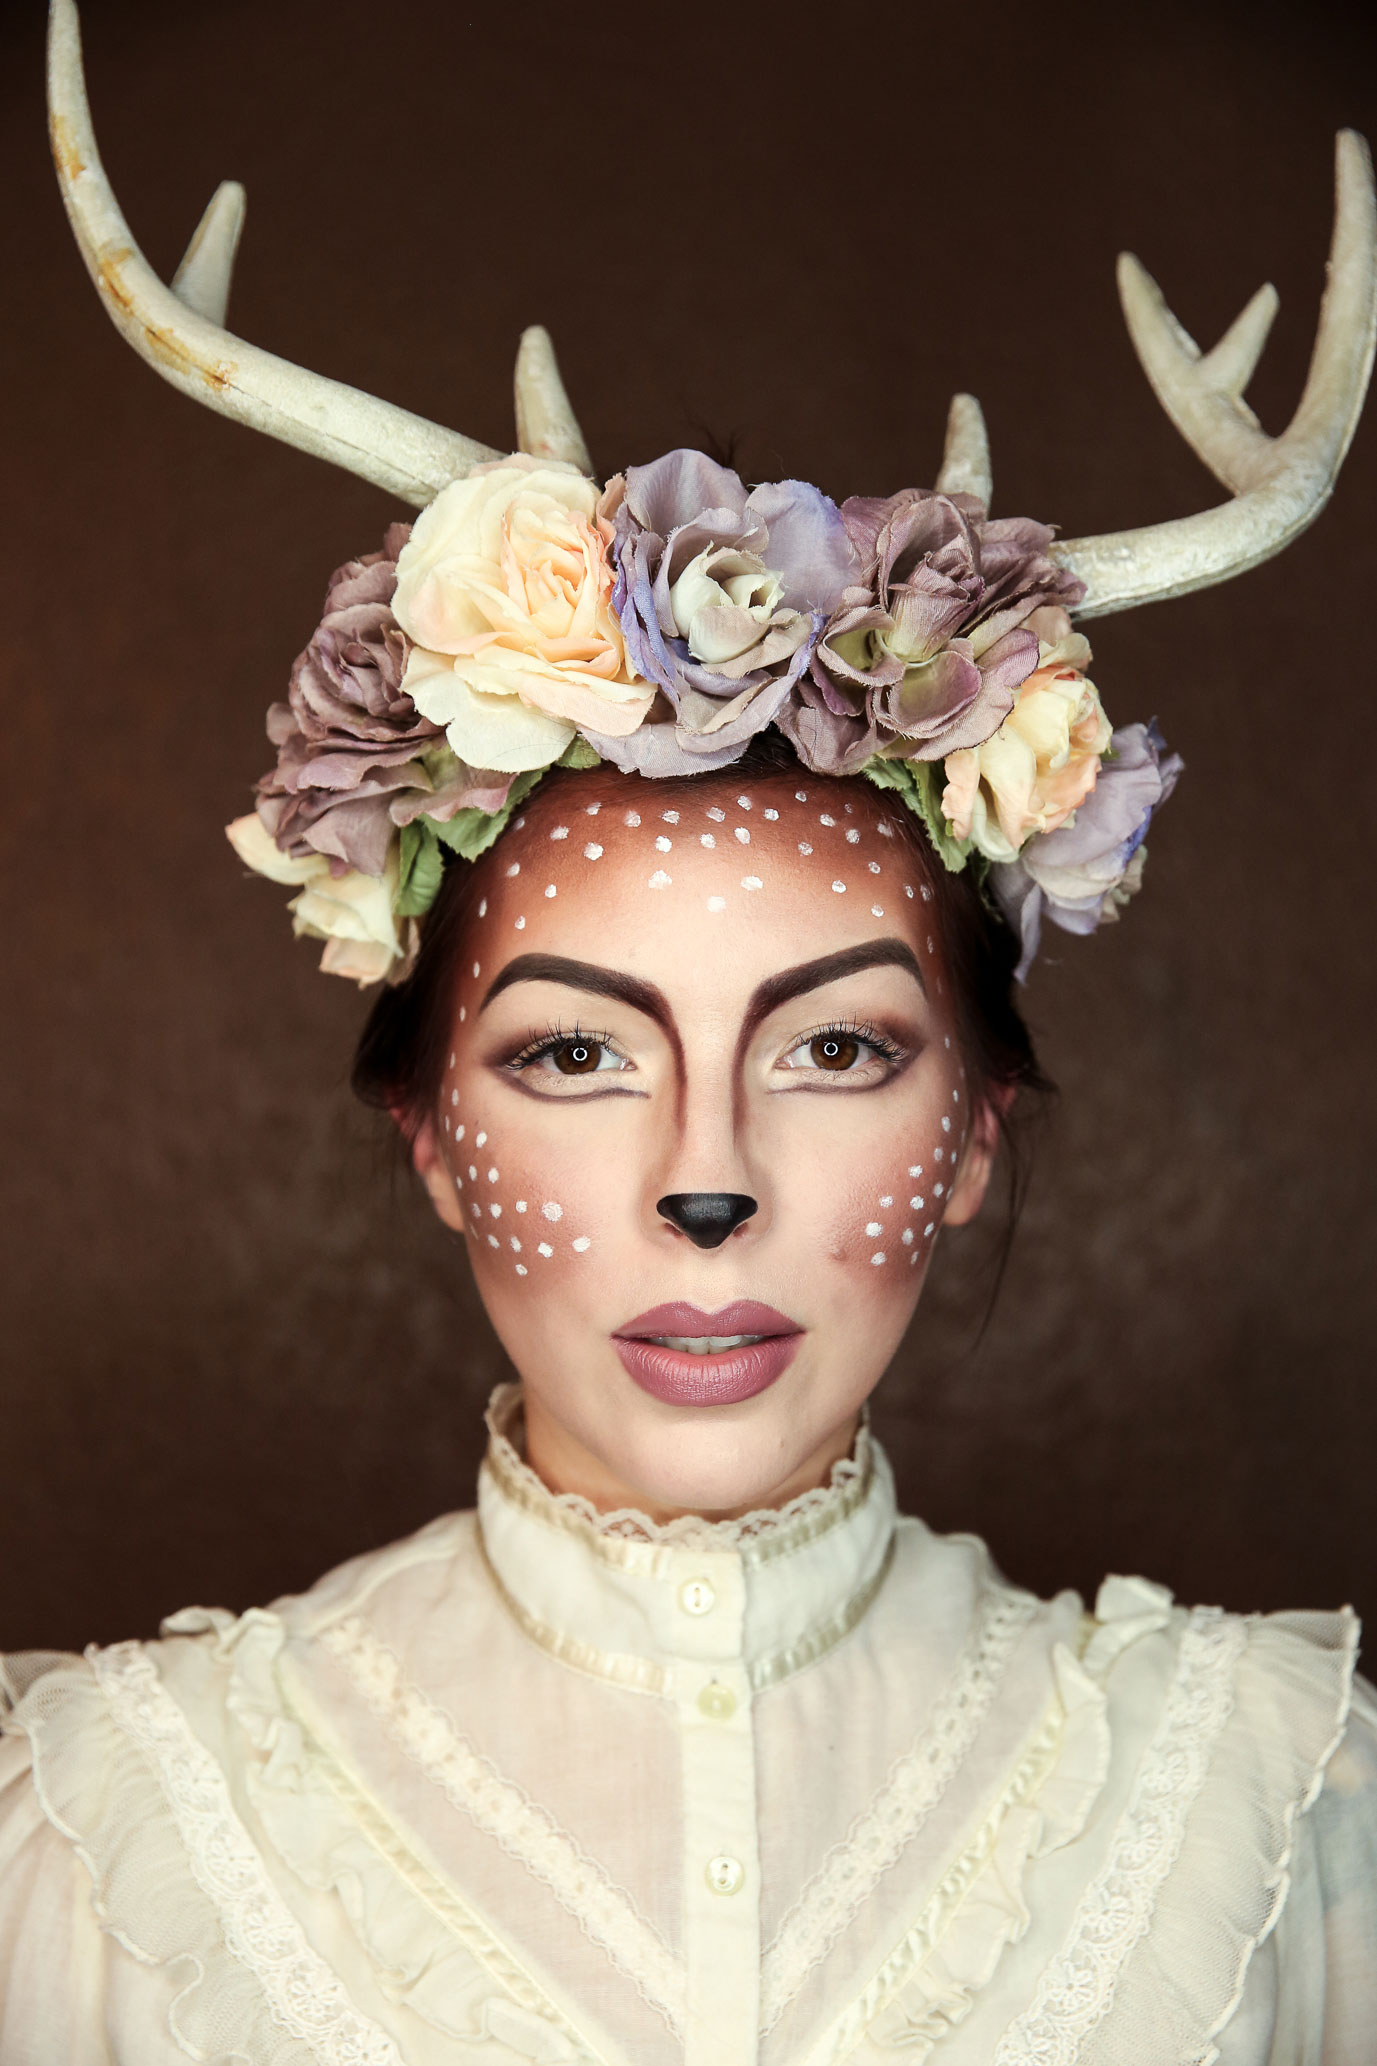 Halloween costume makeup easy deer makeup tutorial easy deer makeup tutorial for halloween fawn makeup baditri Gallery